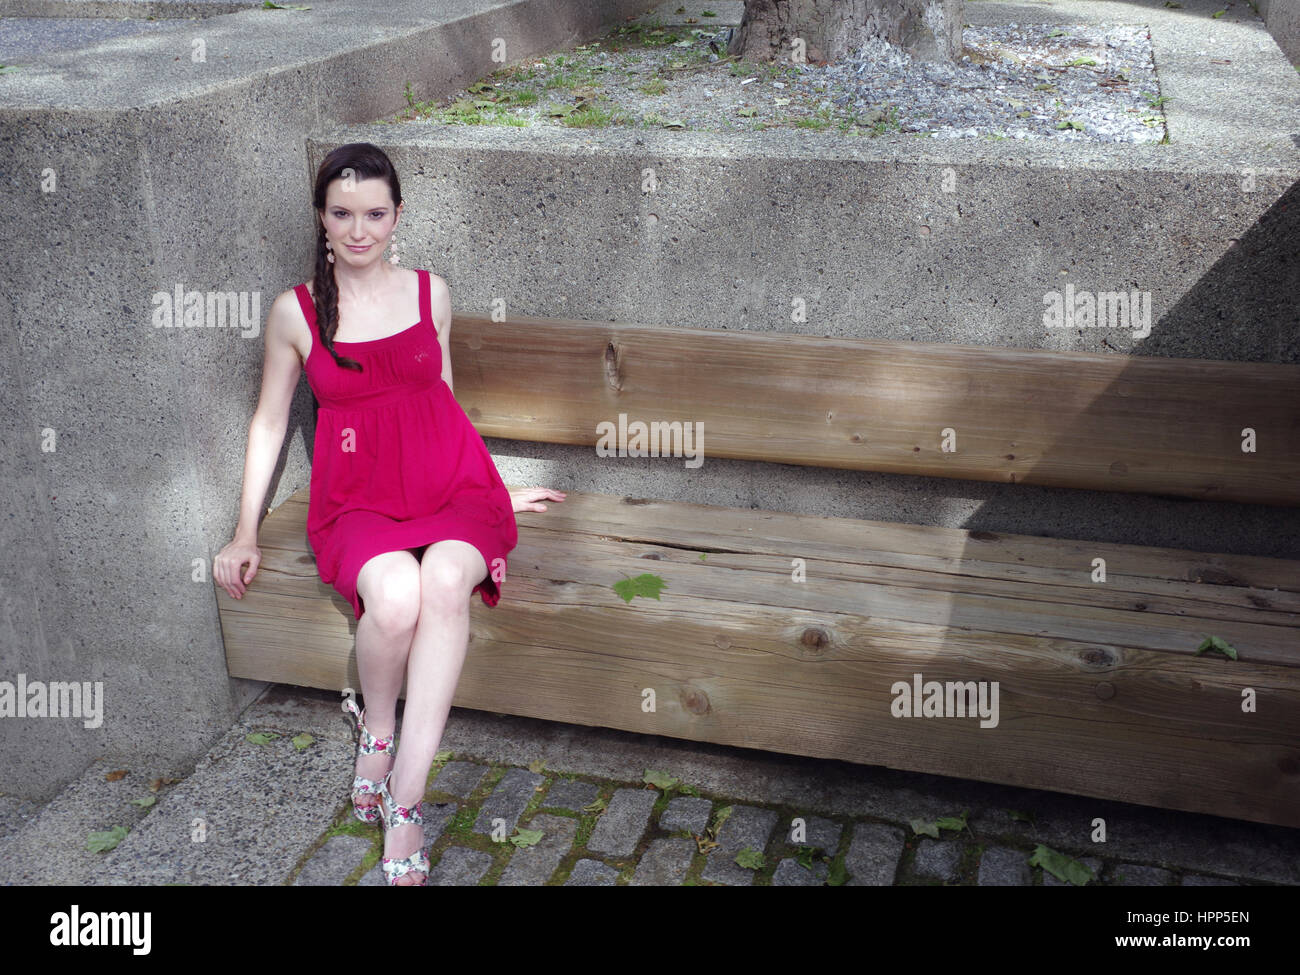 woman wearing red dress lounging on a bench in the sun in the city - Stock Image